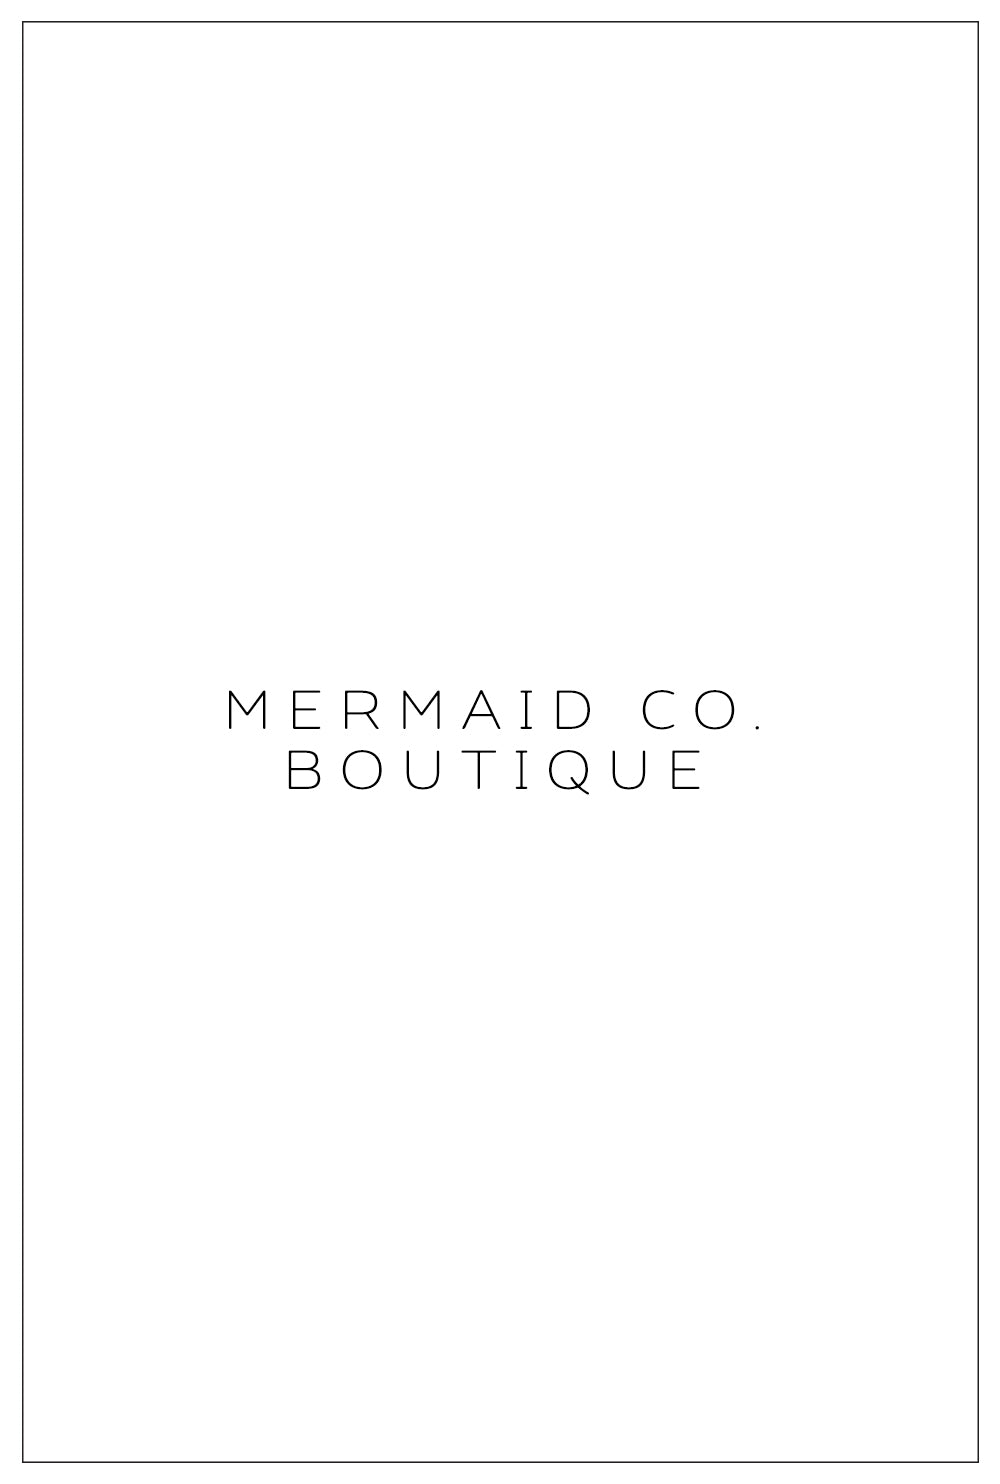 Mermaid Co. Boutique